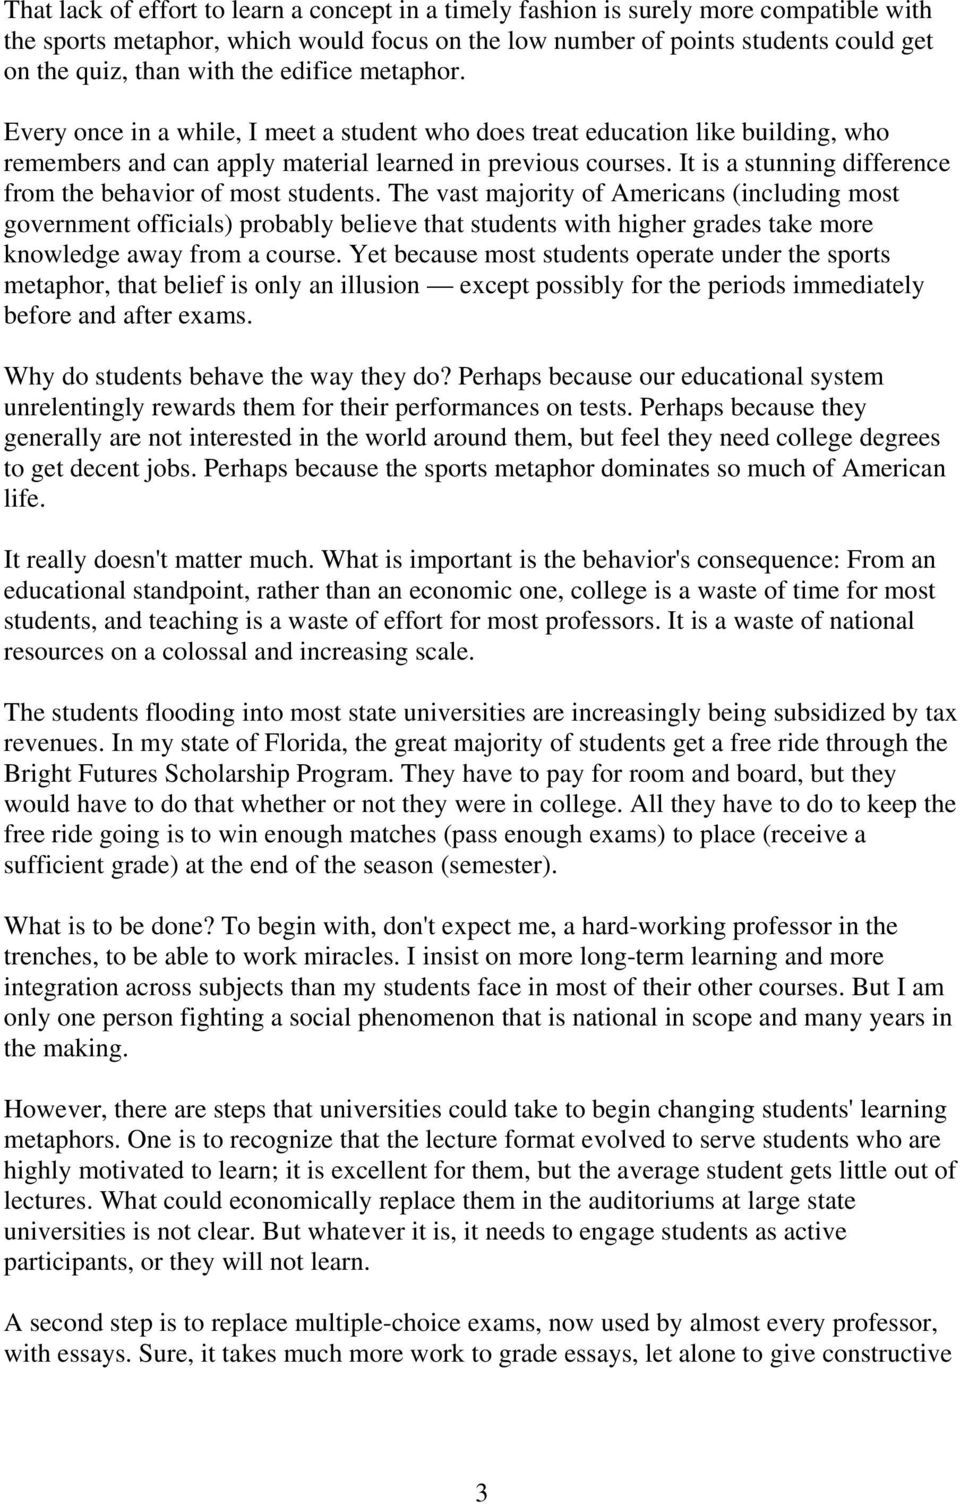 metaphor essay just scoring points by walter r tschinkel pdf  just scoring points by walter r tschinkel pdf it is a stunning difference from the behavior analogy essay